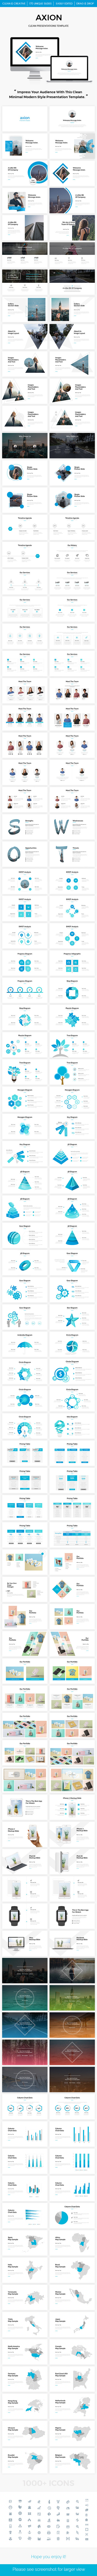 Axion Powerpoint Template - PowerPoint Templates Presentation Templates